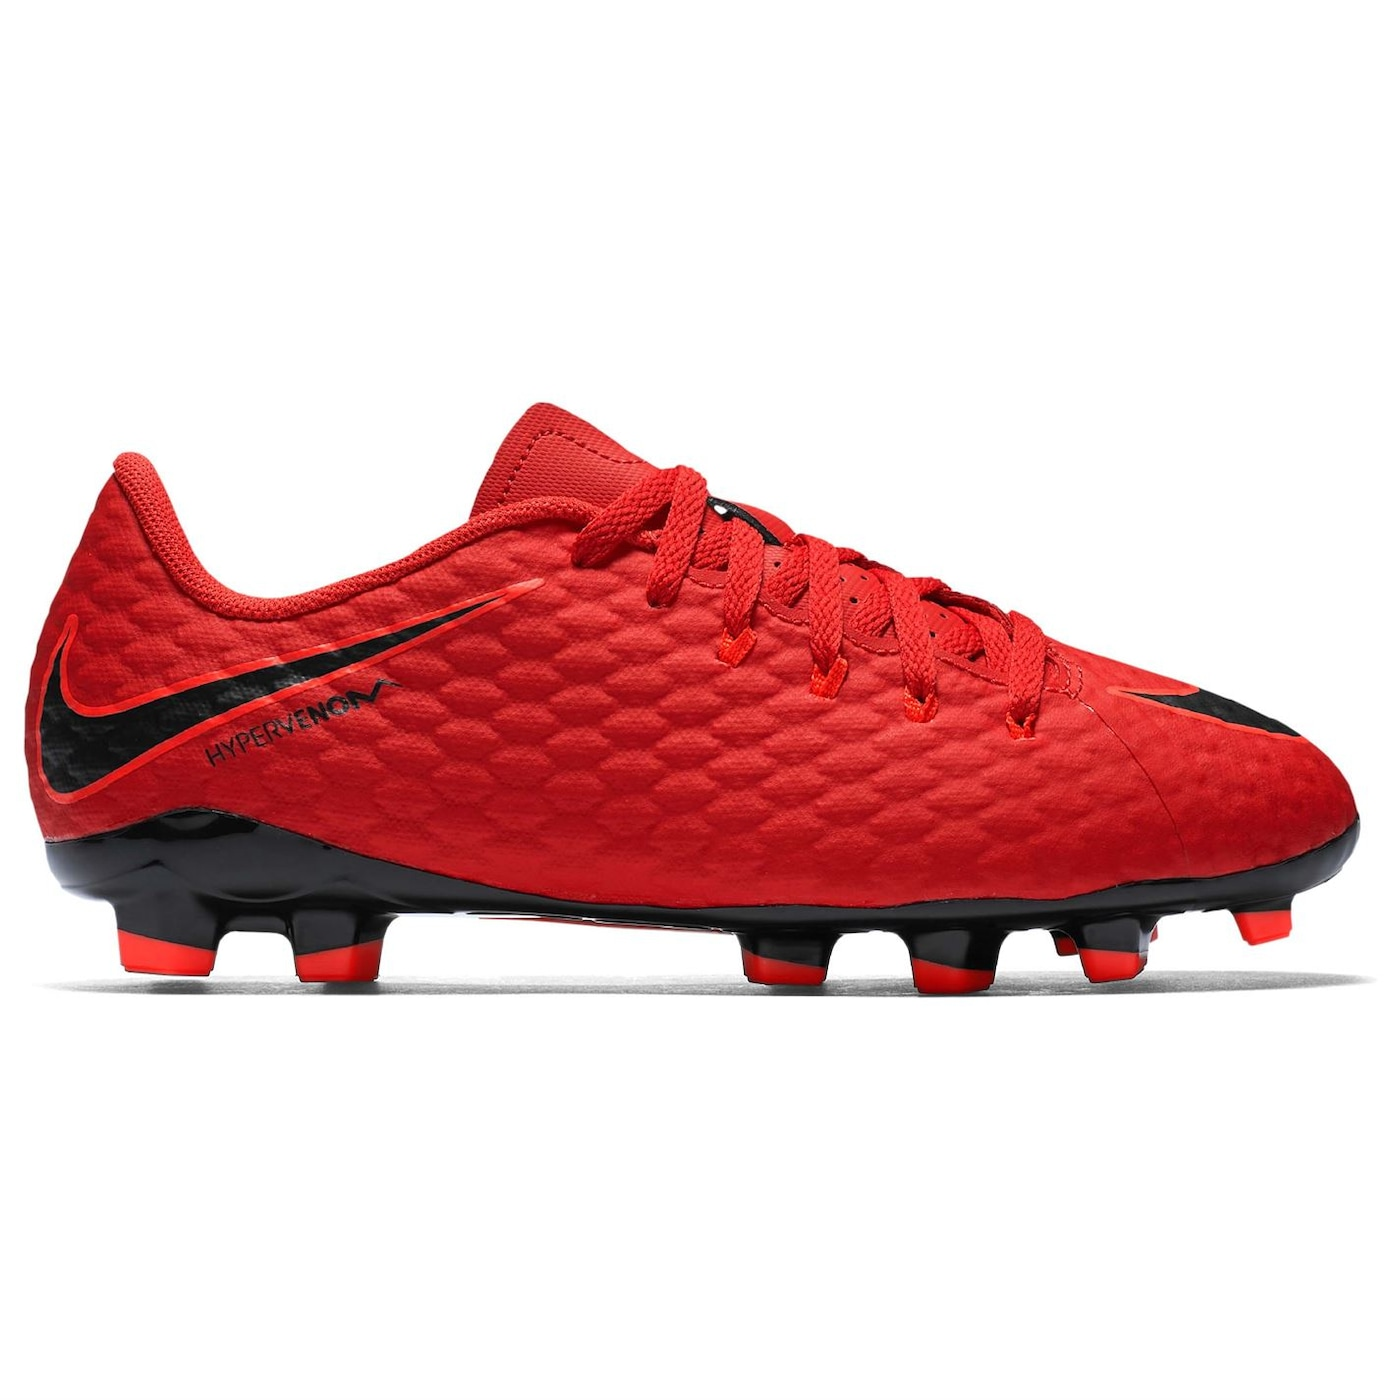 Nike Hypervenom Phelon Childrens FG Football Boots